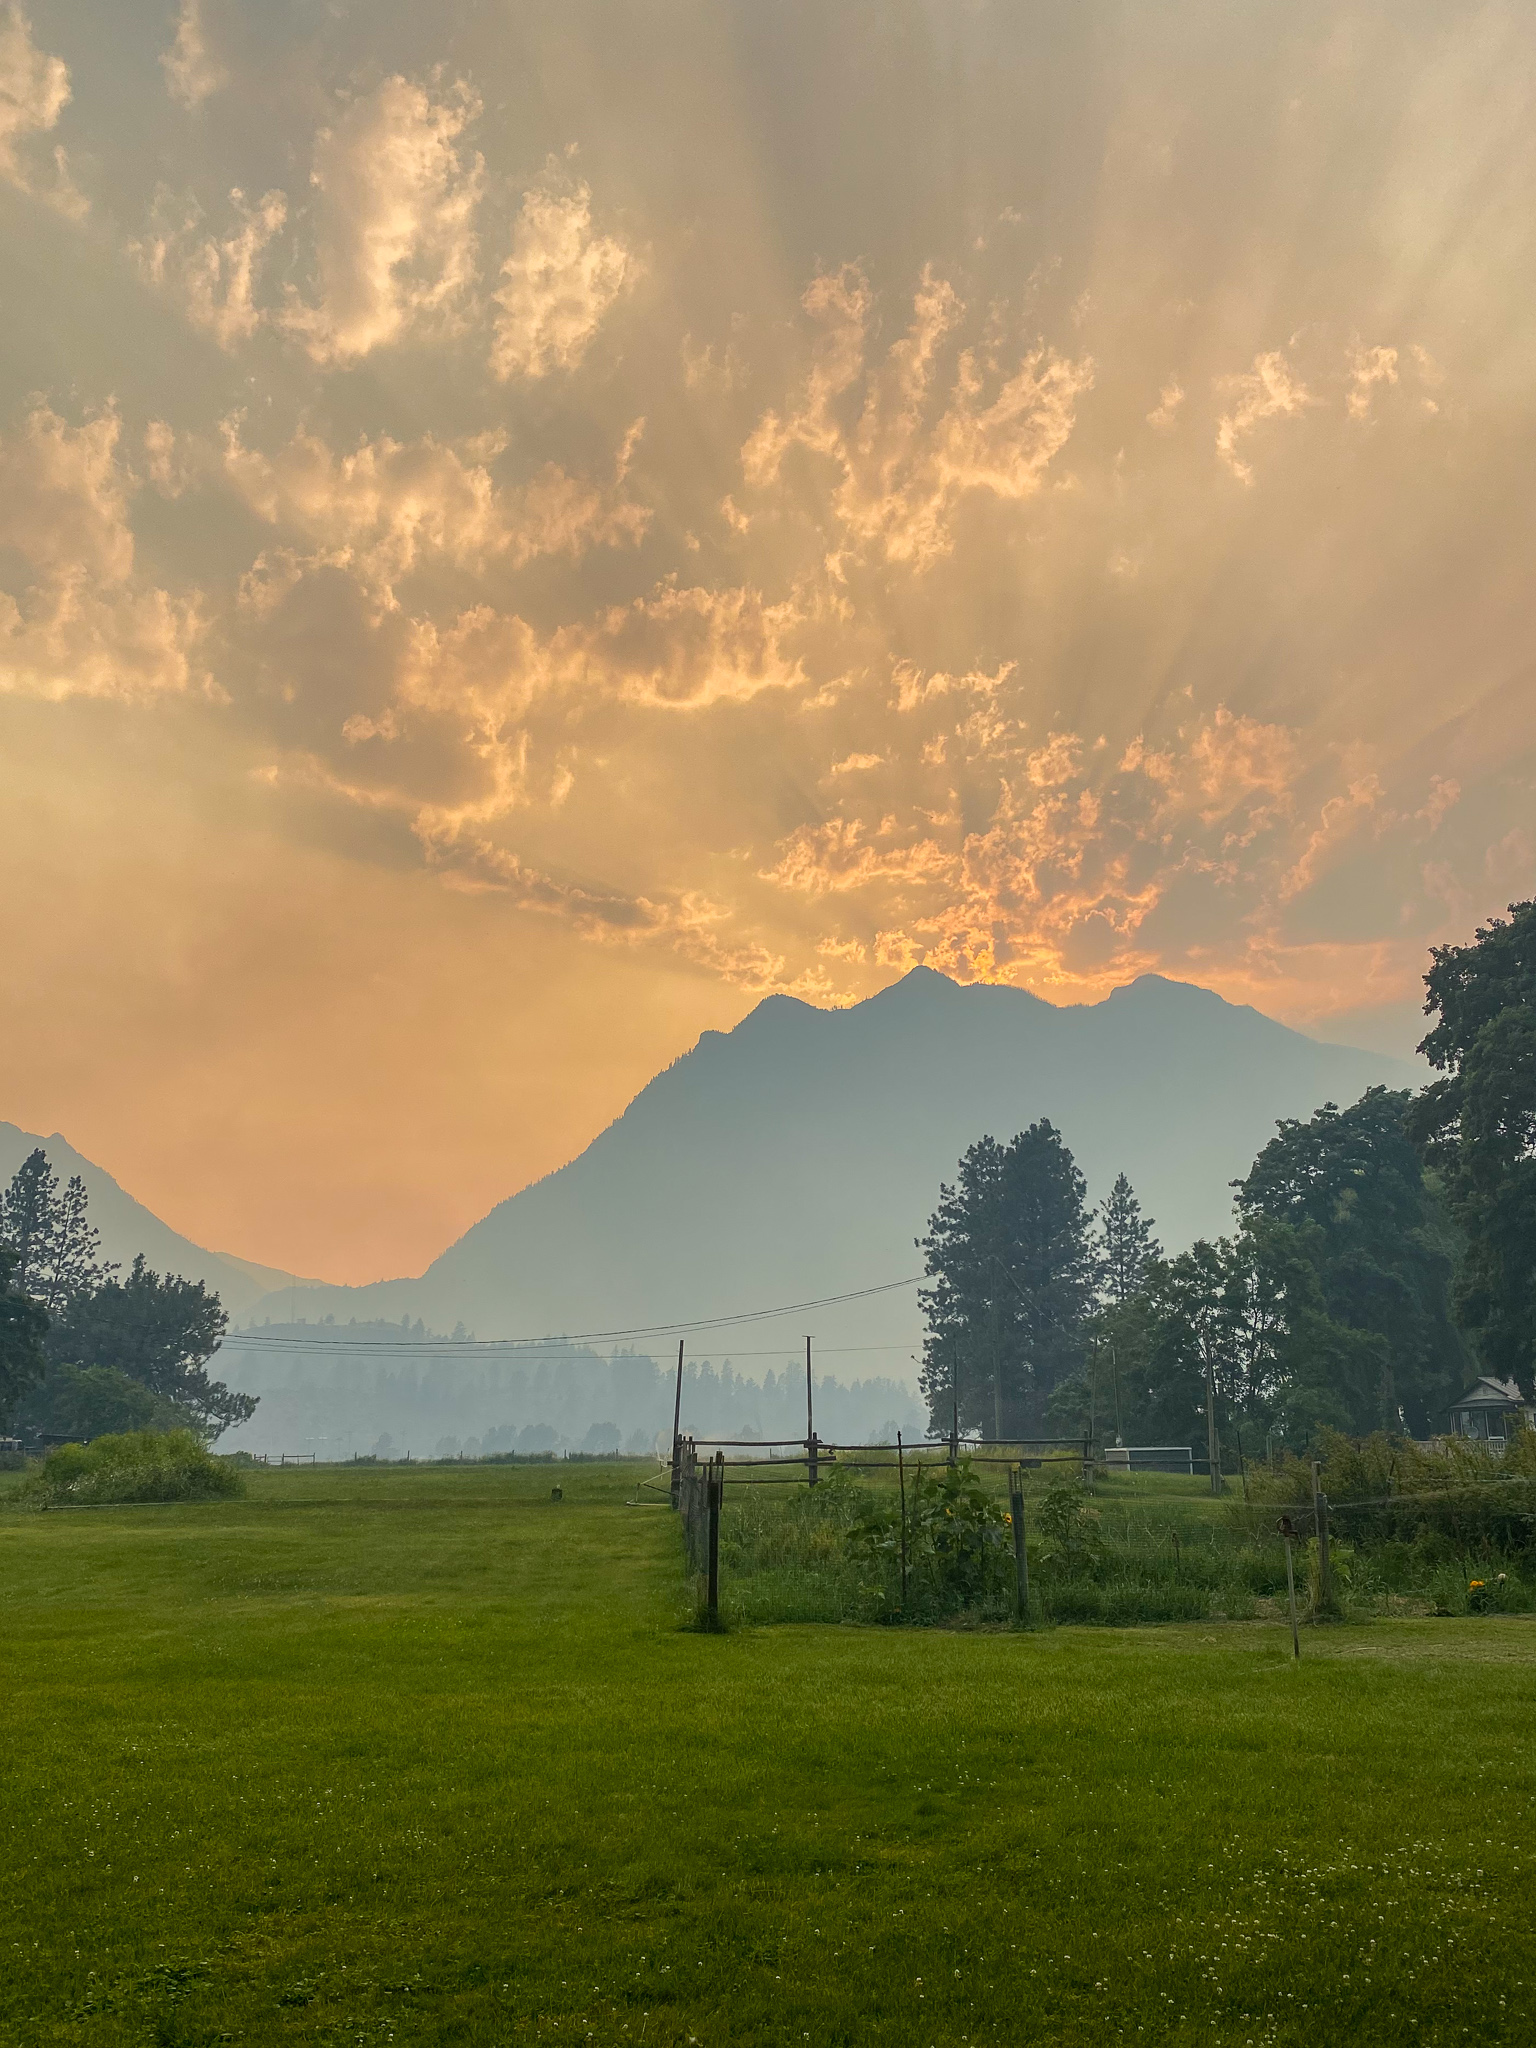 Smokey skies in Lilloeet, BC, after the Lytton wildfire June 30, 2021, photo by Ayden Harrison